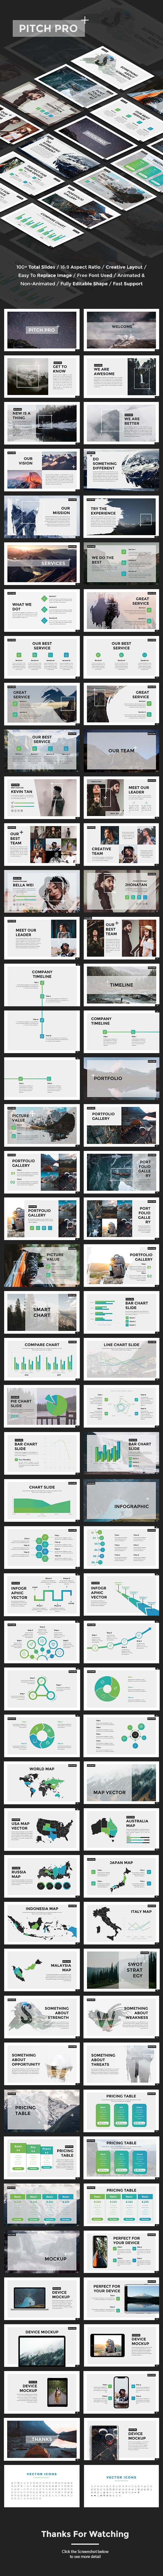 GraphicRiver Pitch Pro Start Up Pitch Deck Google Slides Template 21143766